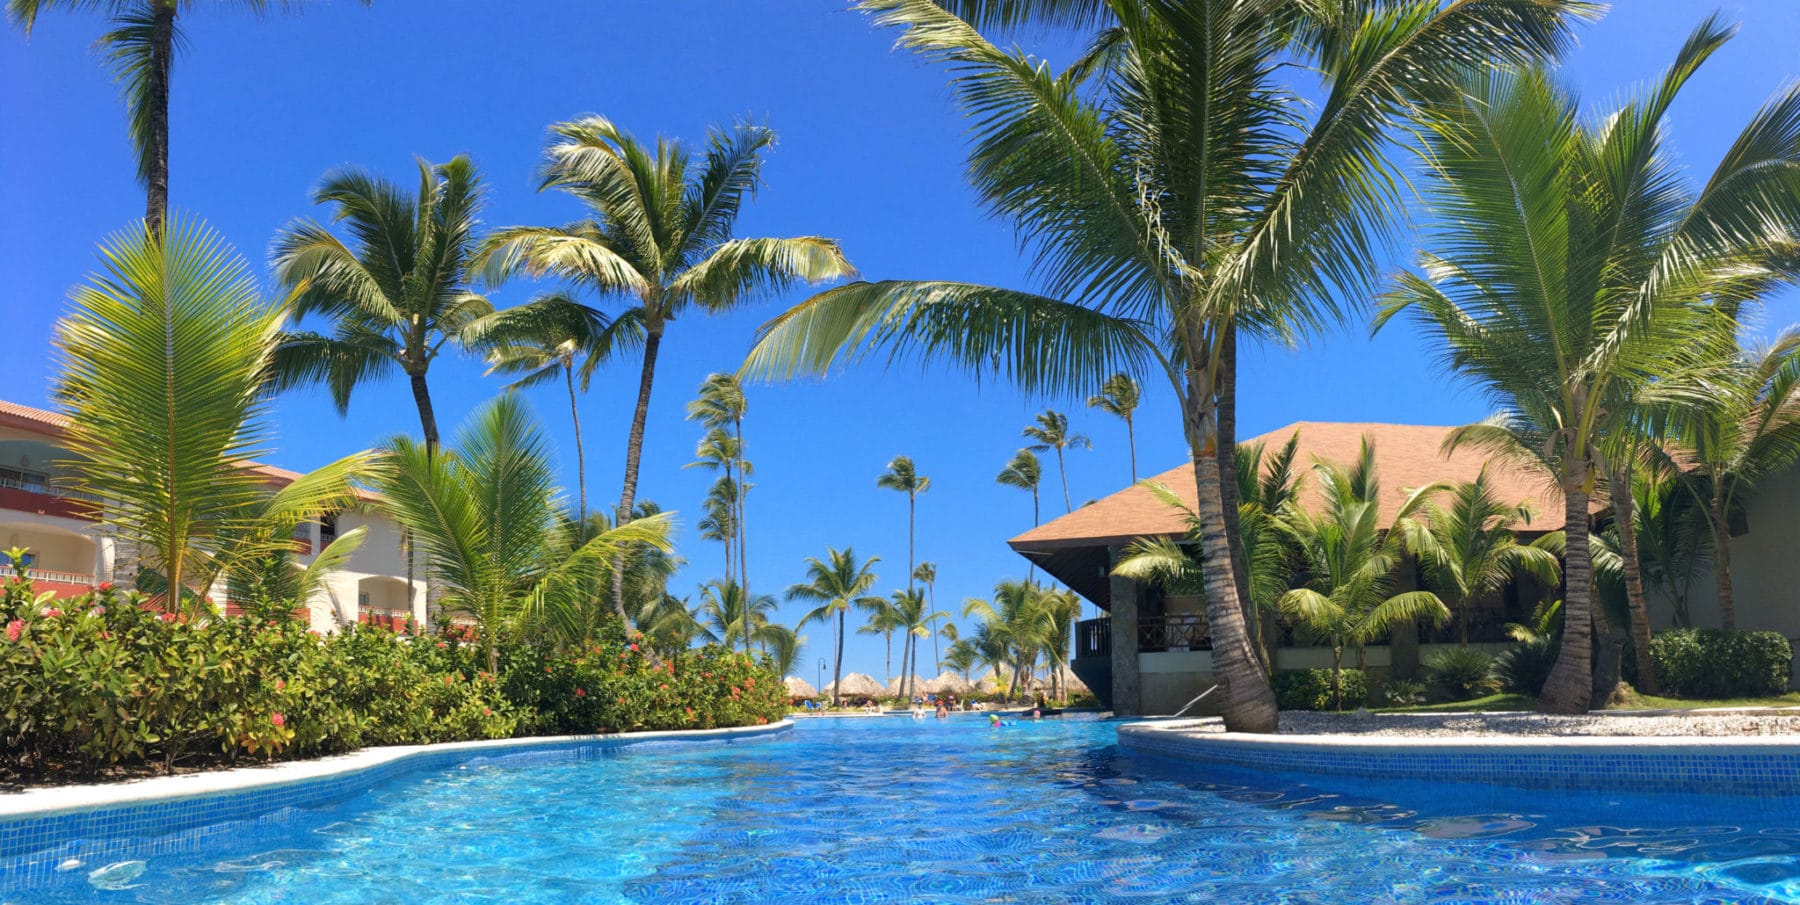 Majestic Colonial Punta Cana One Of The Best Family Beach Vacations Ever